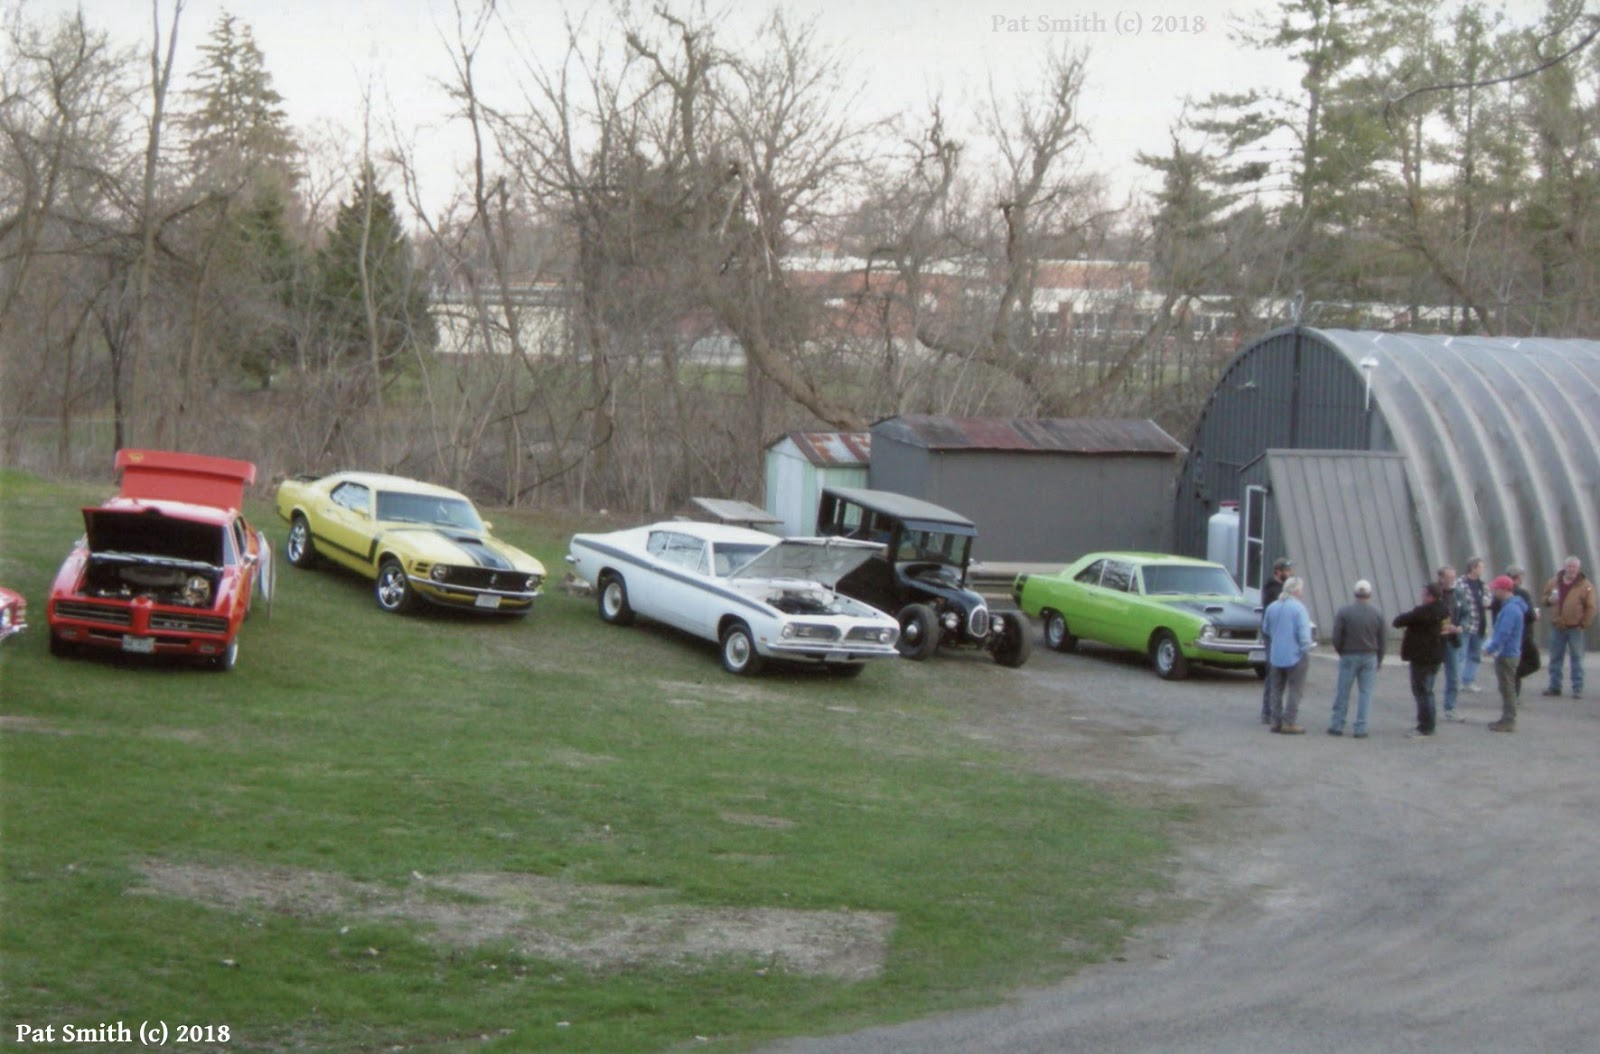 Random Car Club Celebrates 50 Years Phscollectorcarworld Electric Window Lifts Wiring Diagram For 1955 Studebaker Passenger Cars All Models Except 4 Door Sedans More Classics Including 1969 Gto Judge 1970 Boss 302 Barracuda Fastback And Dart Swinger